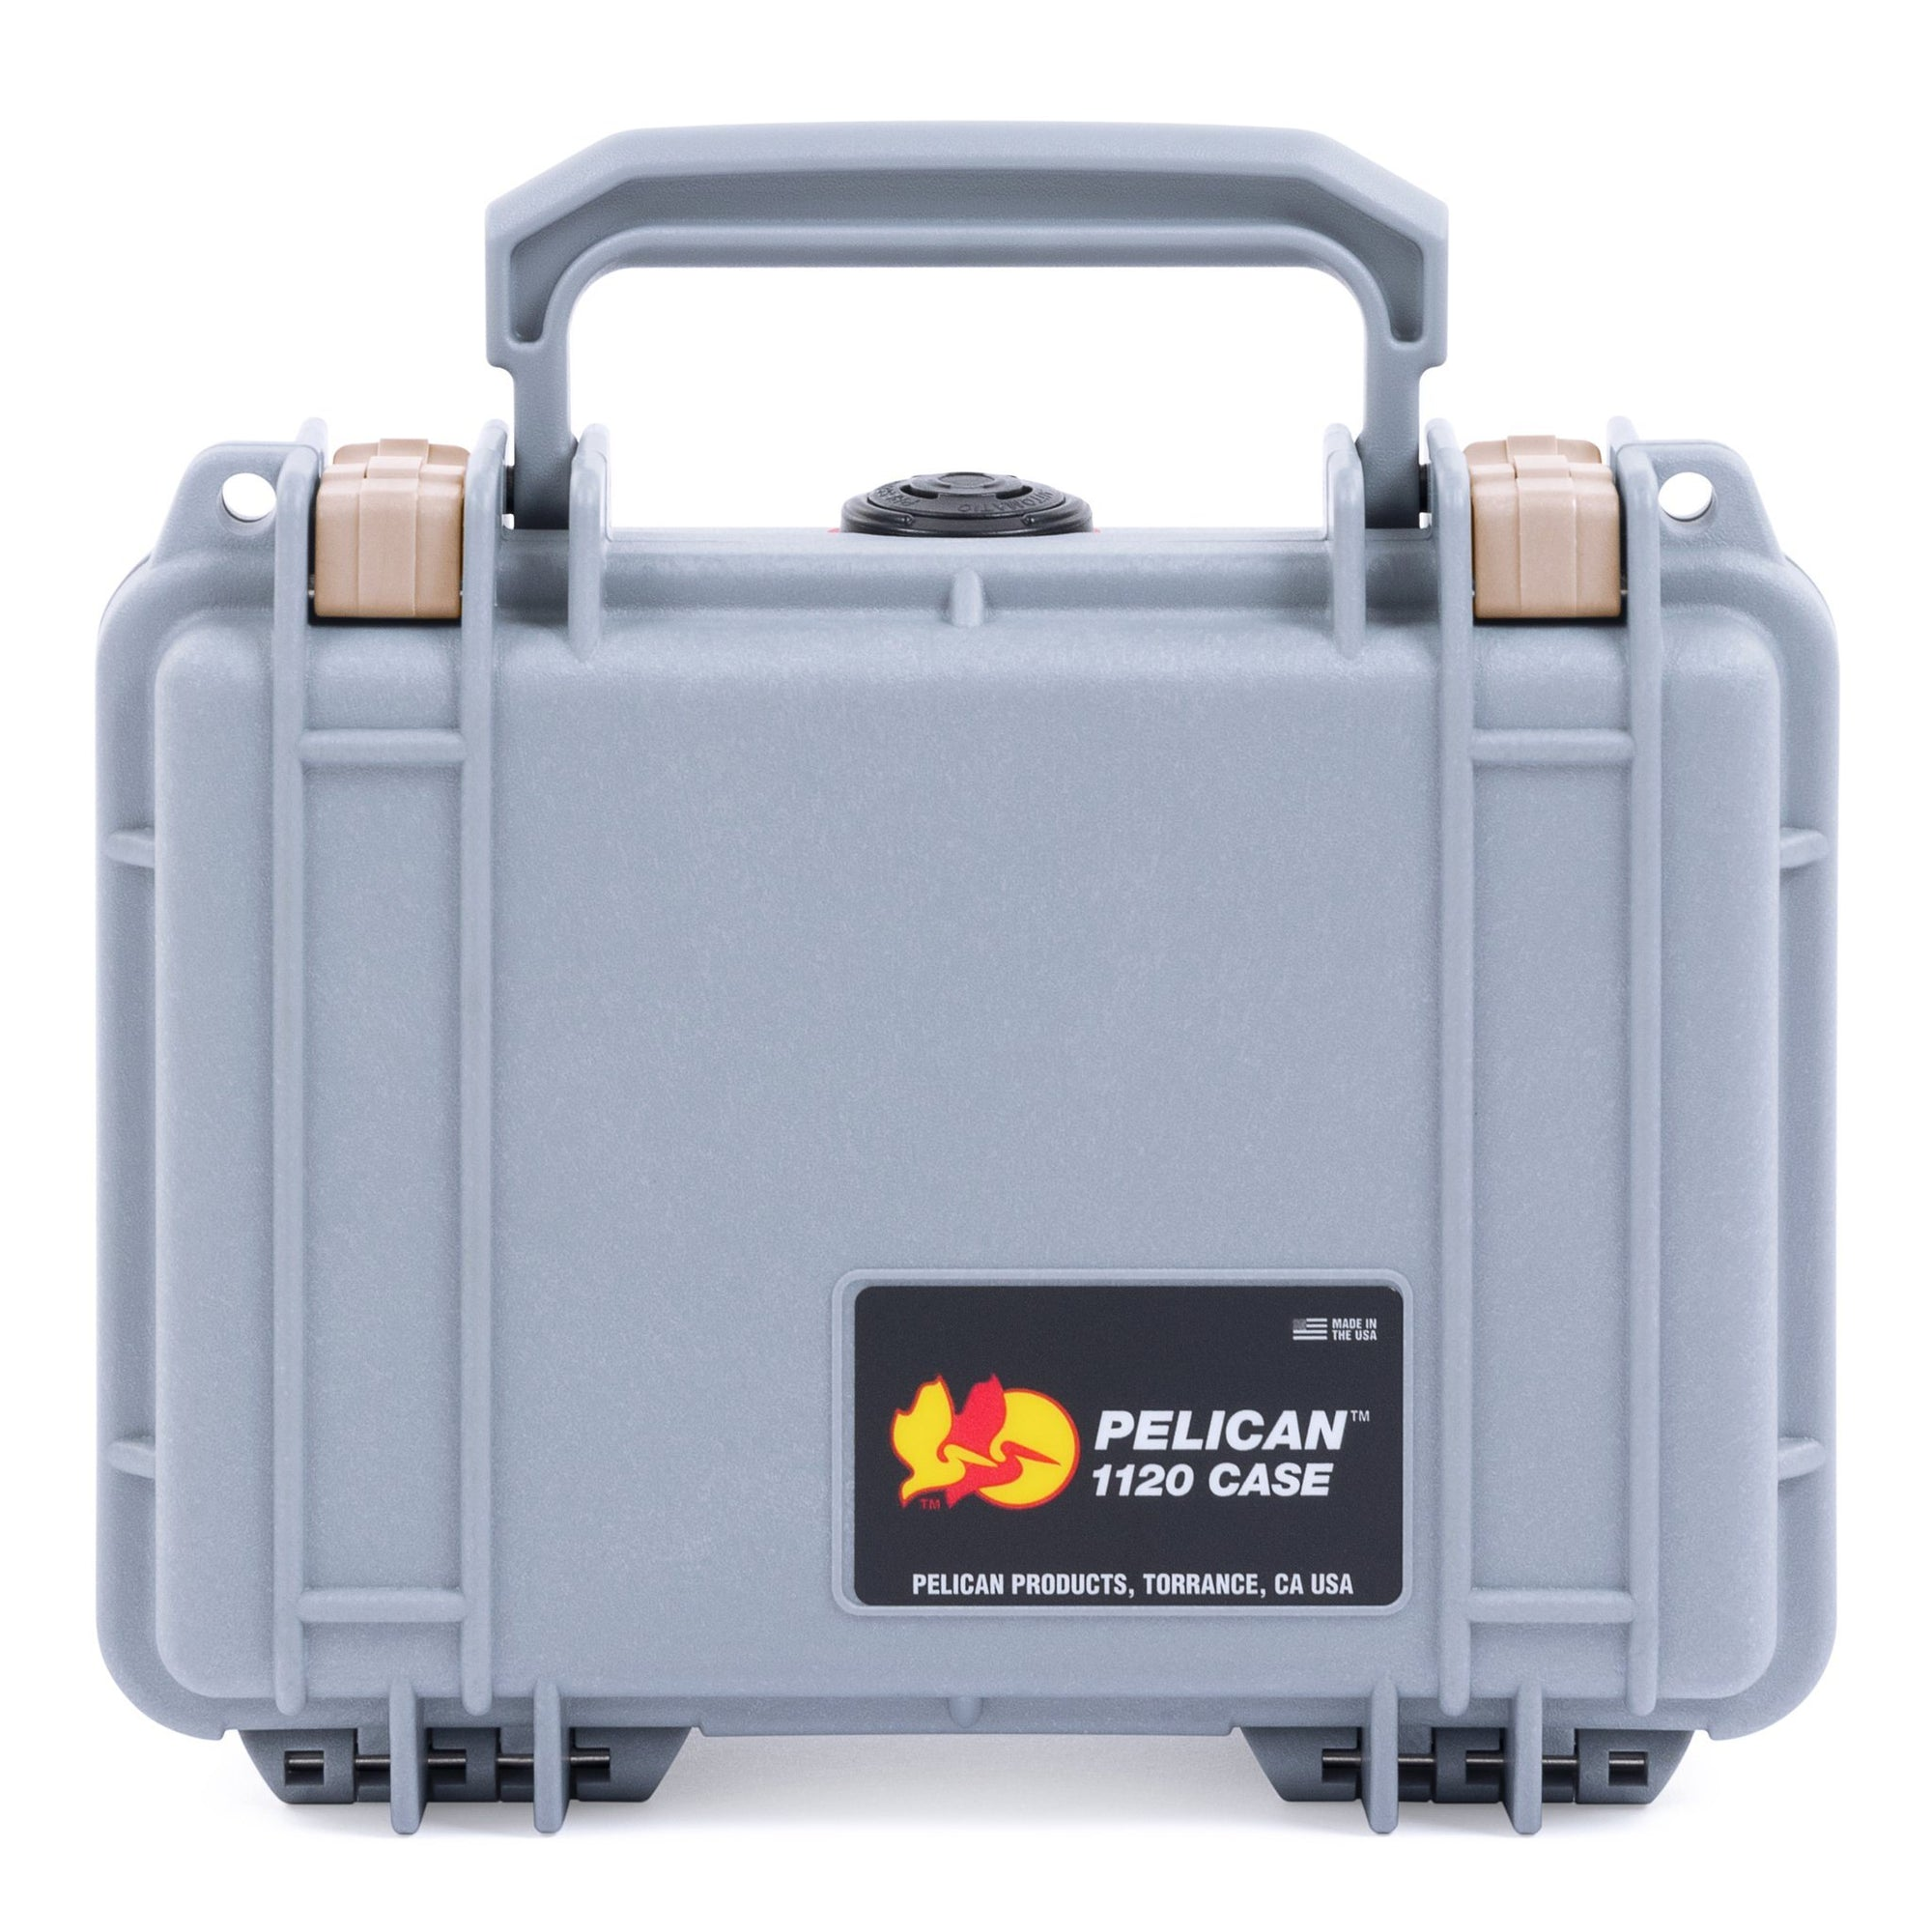 Pelican 1120 Case, Silver with Desert Tan Latches - Pelican Color Case